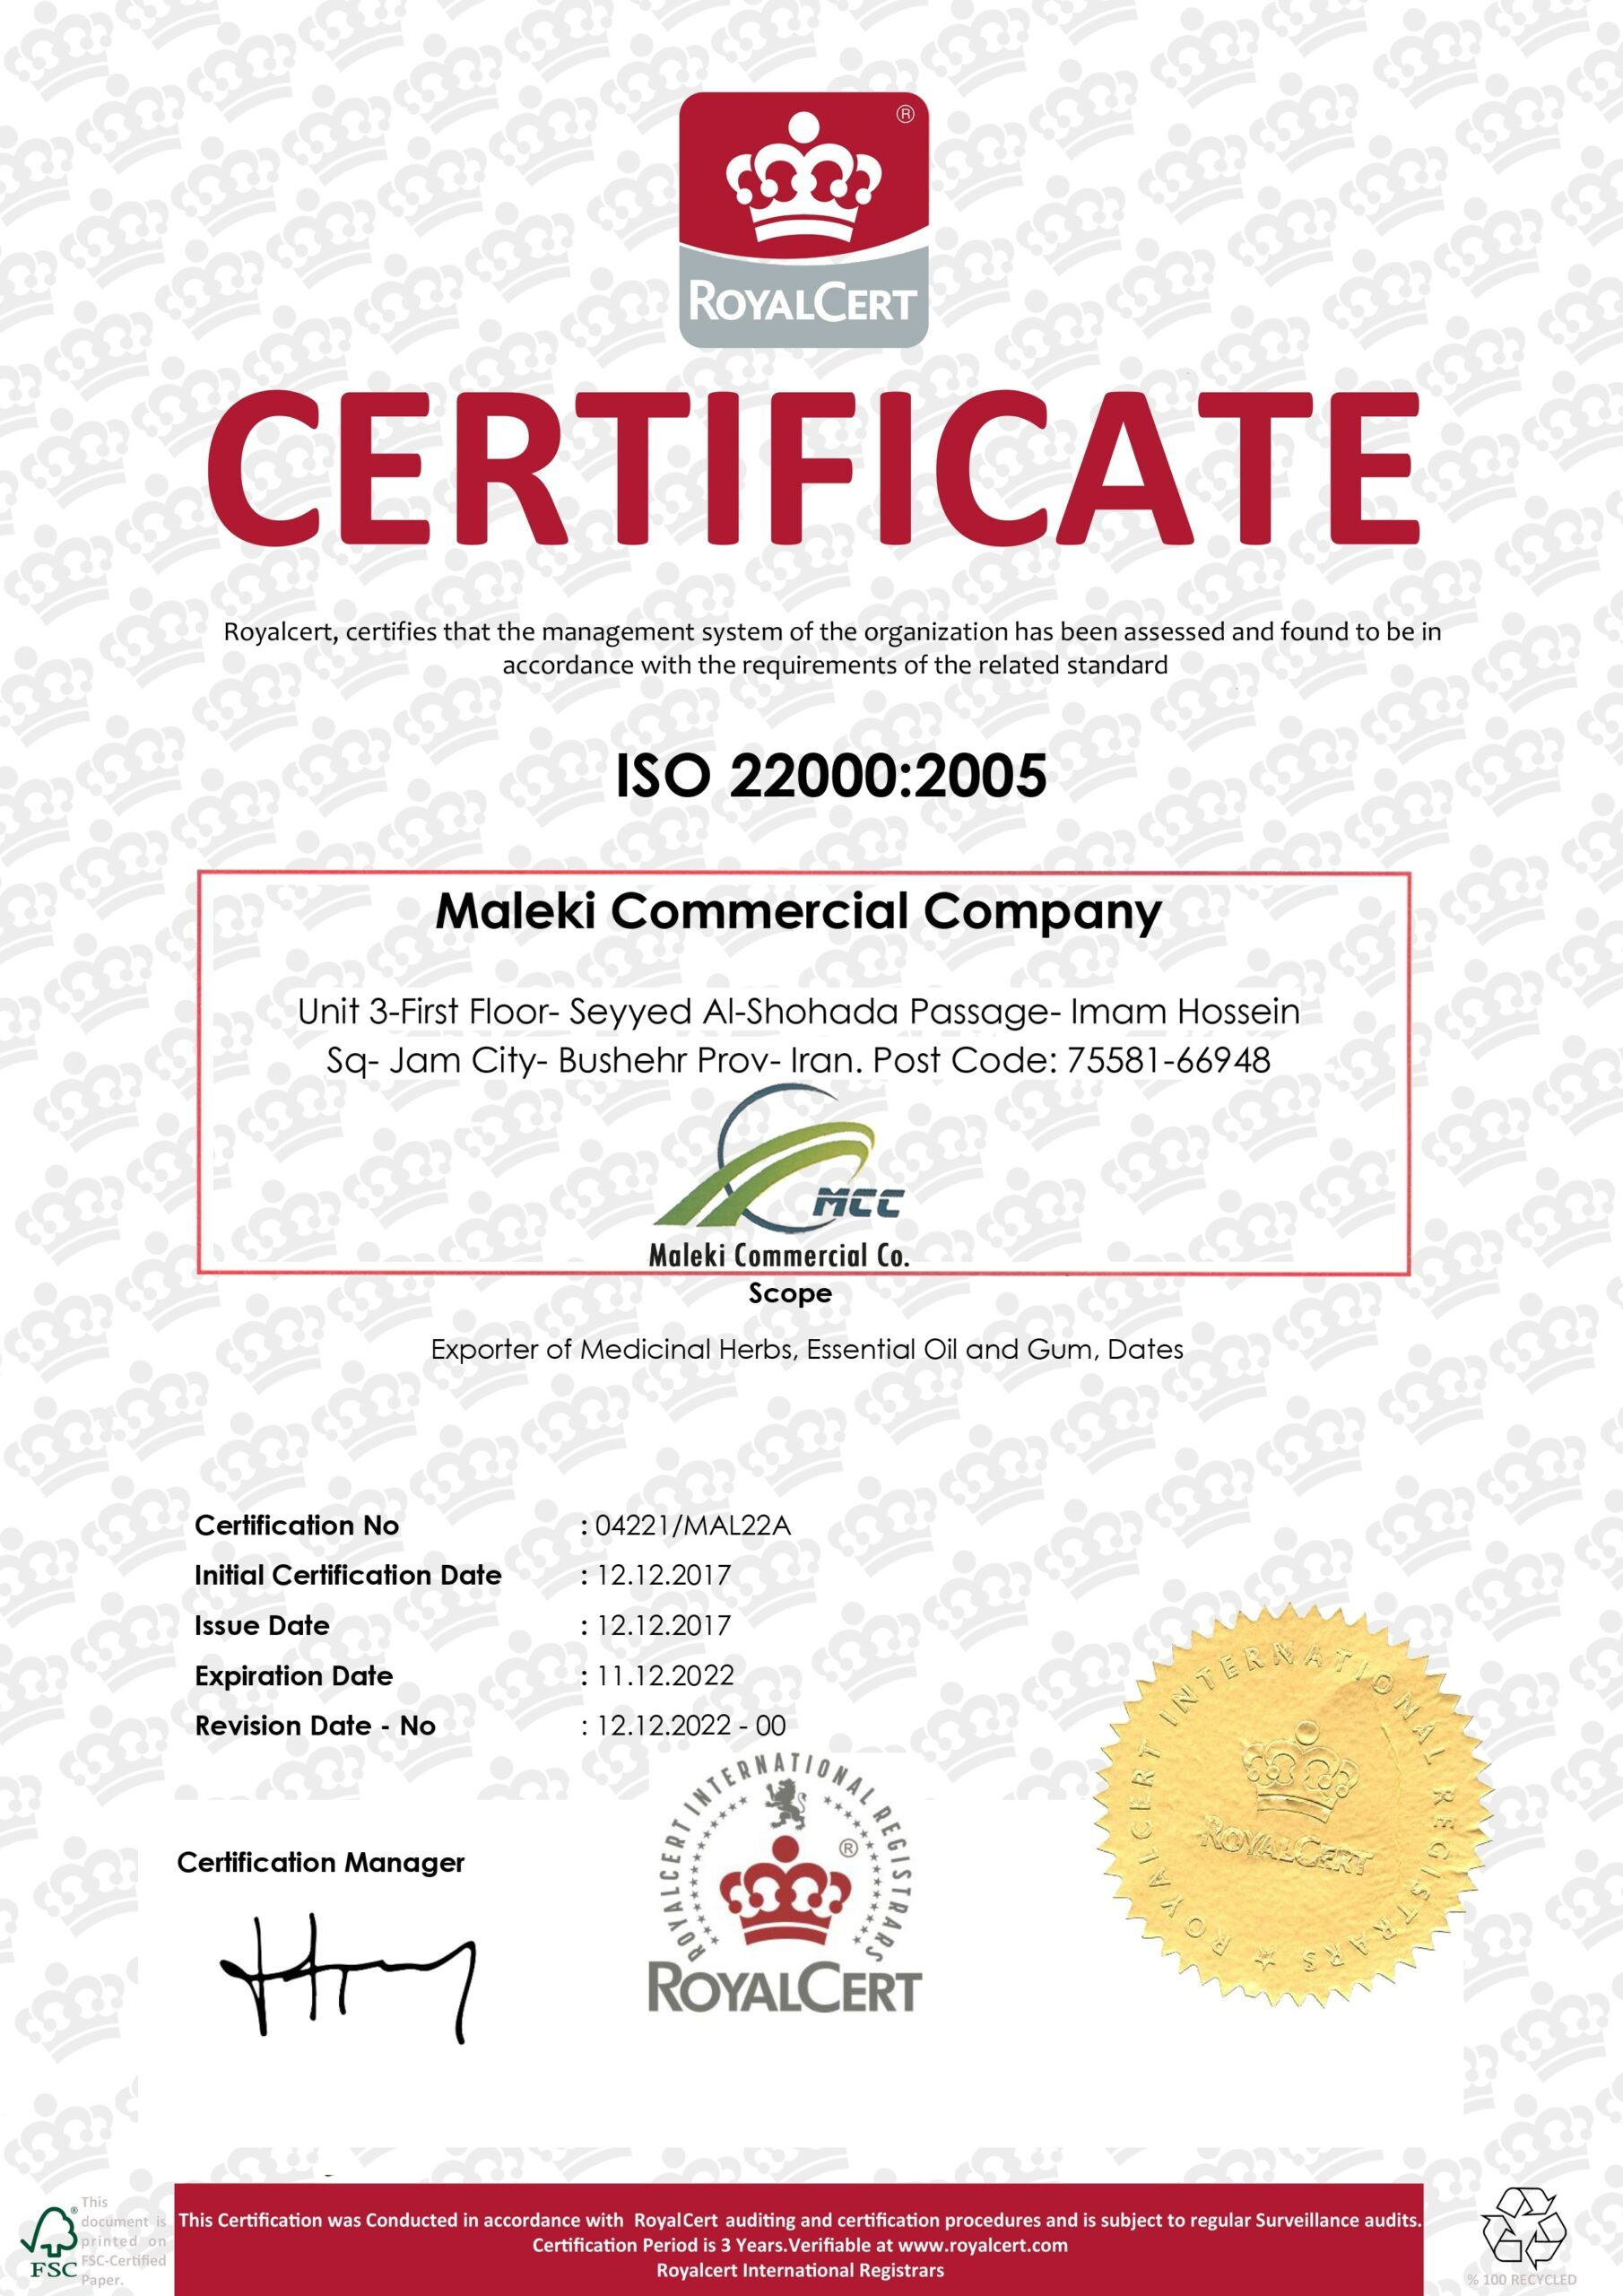 ISO 22000 Certificate Export of Herb essential oil - Maleki Commercial Co.